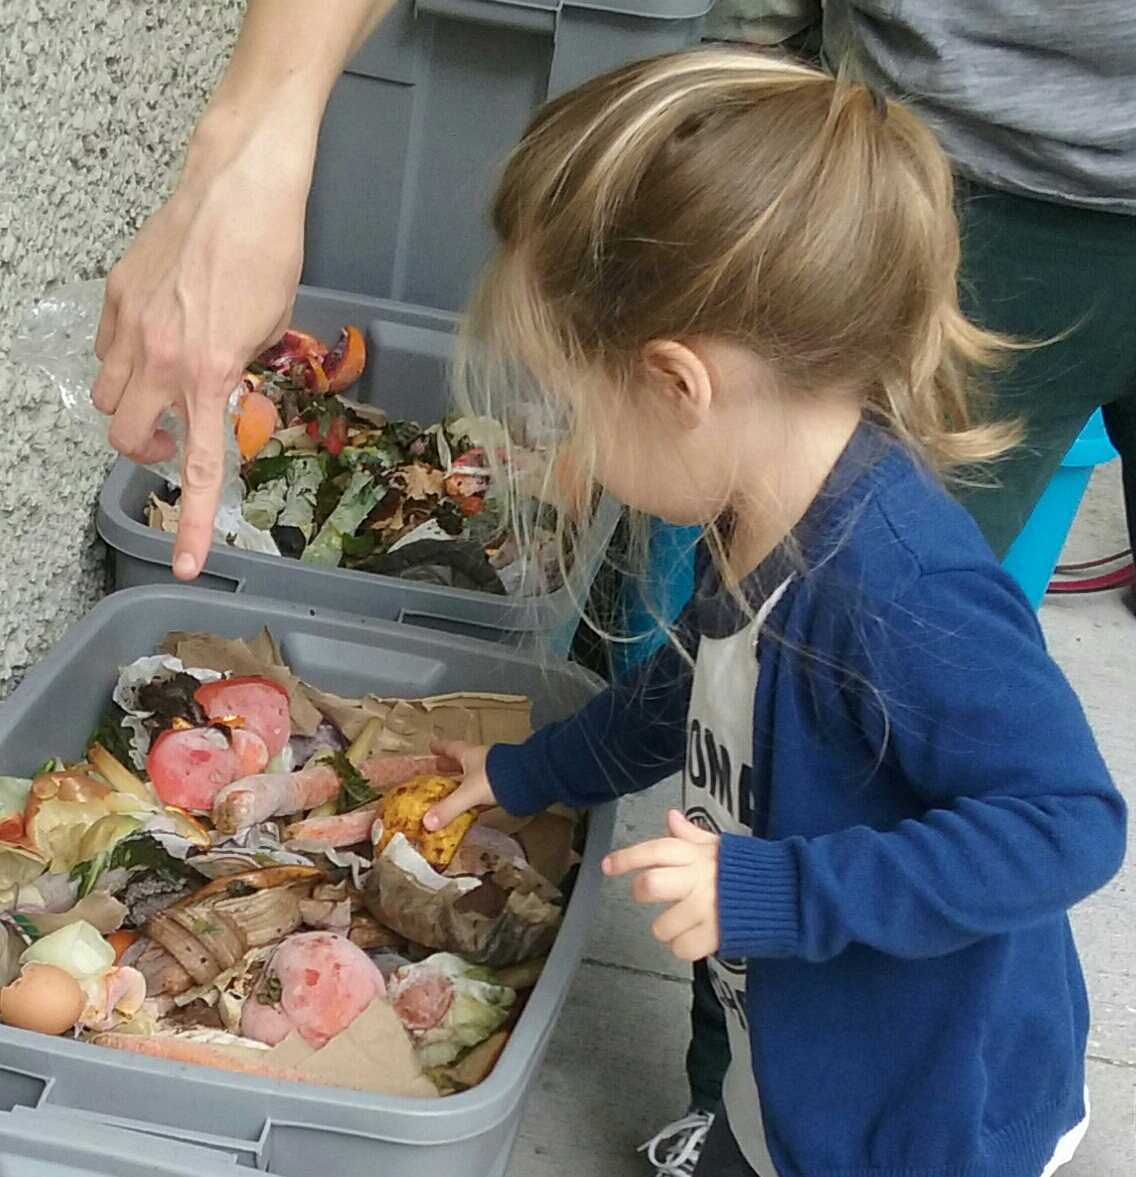 Kids like to compost